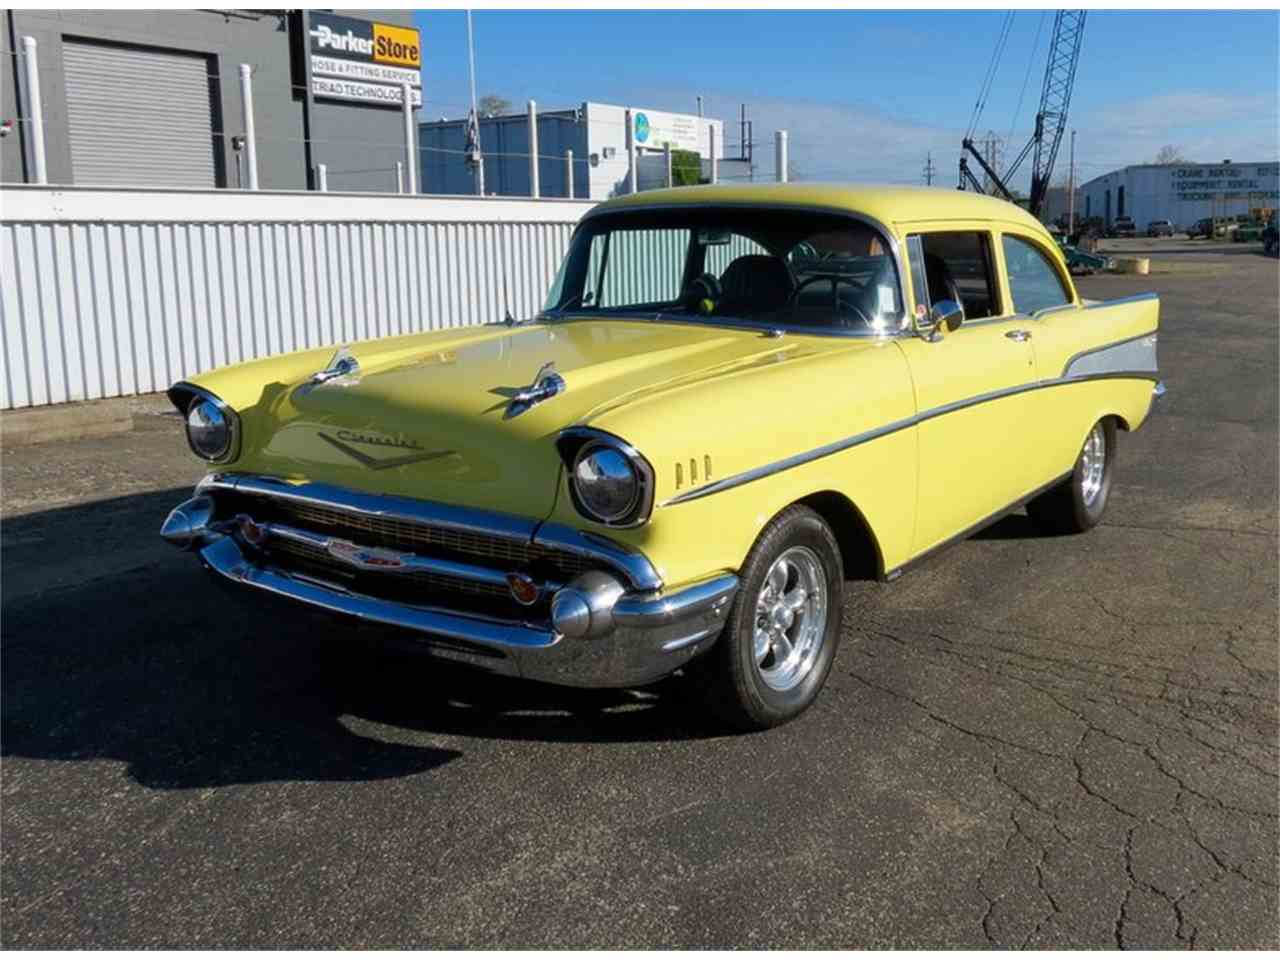 1957 Chevrolet Bel Air for Sale on ClassicCars.com - Pg 2 - Order ...